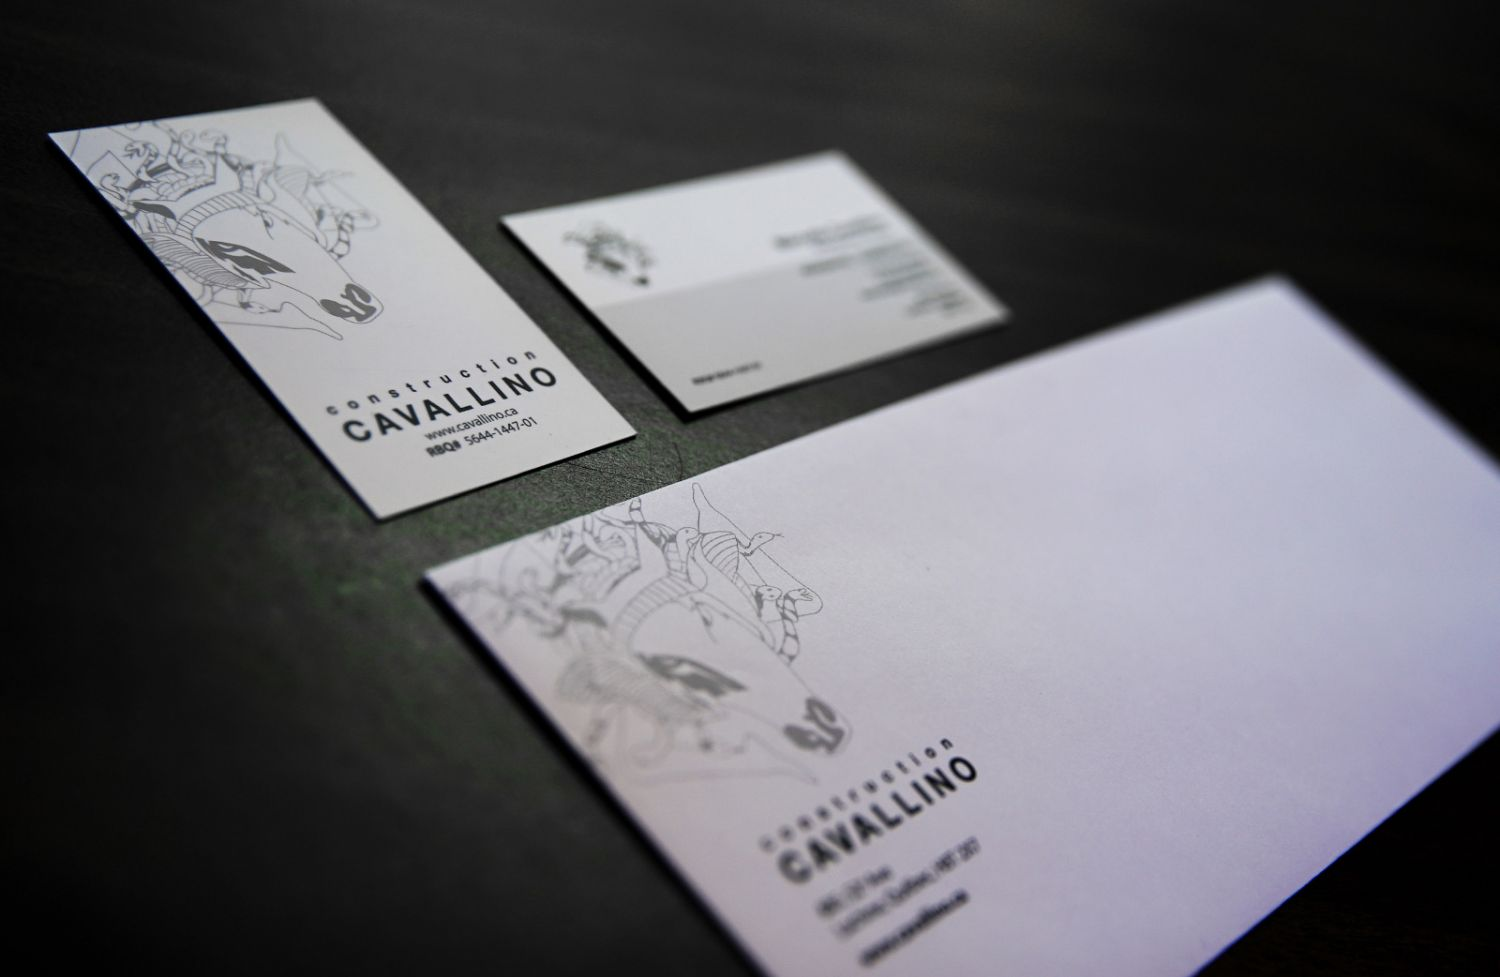 Cavallino construction business cards and envelopes